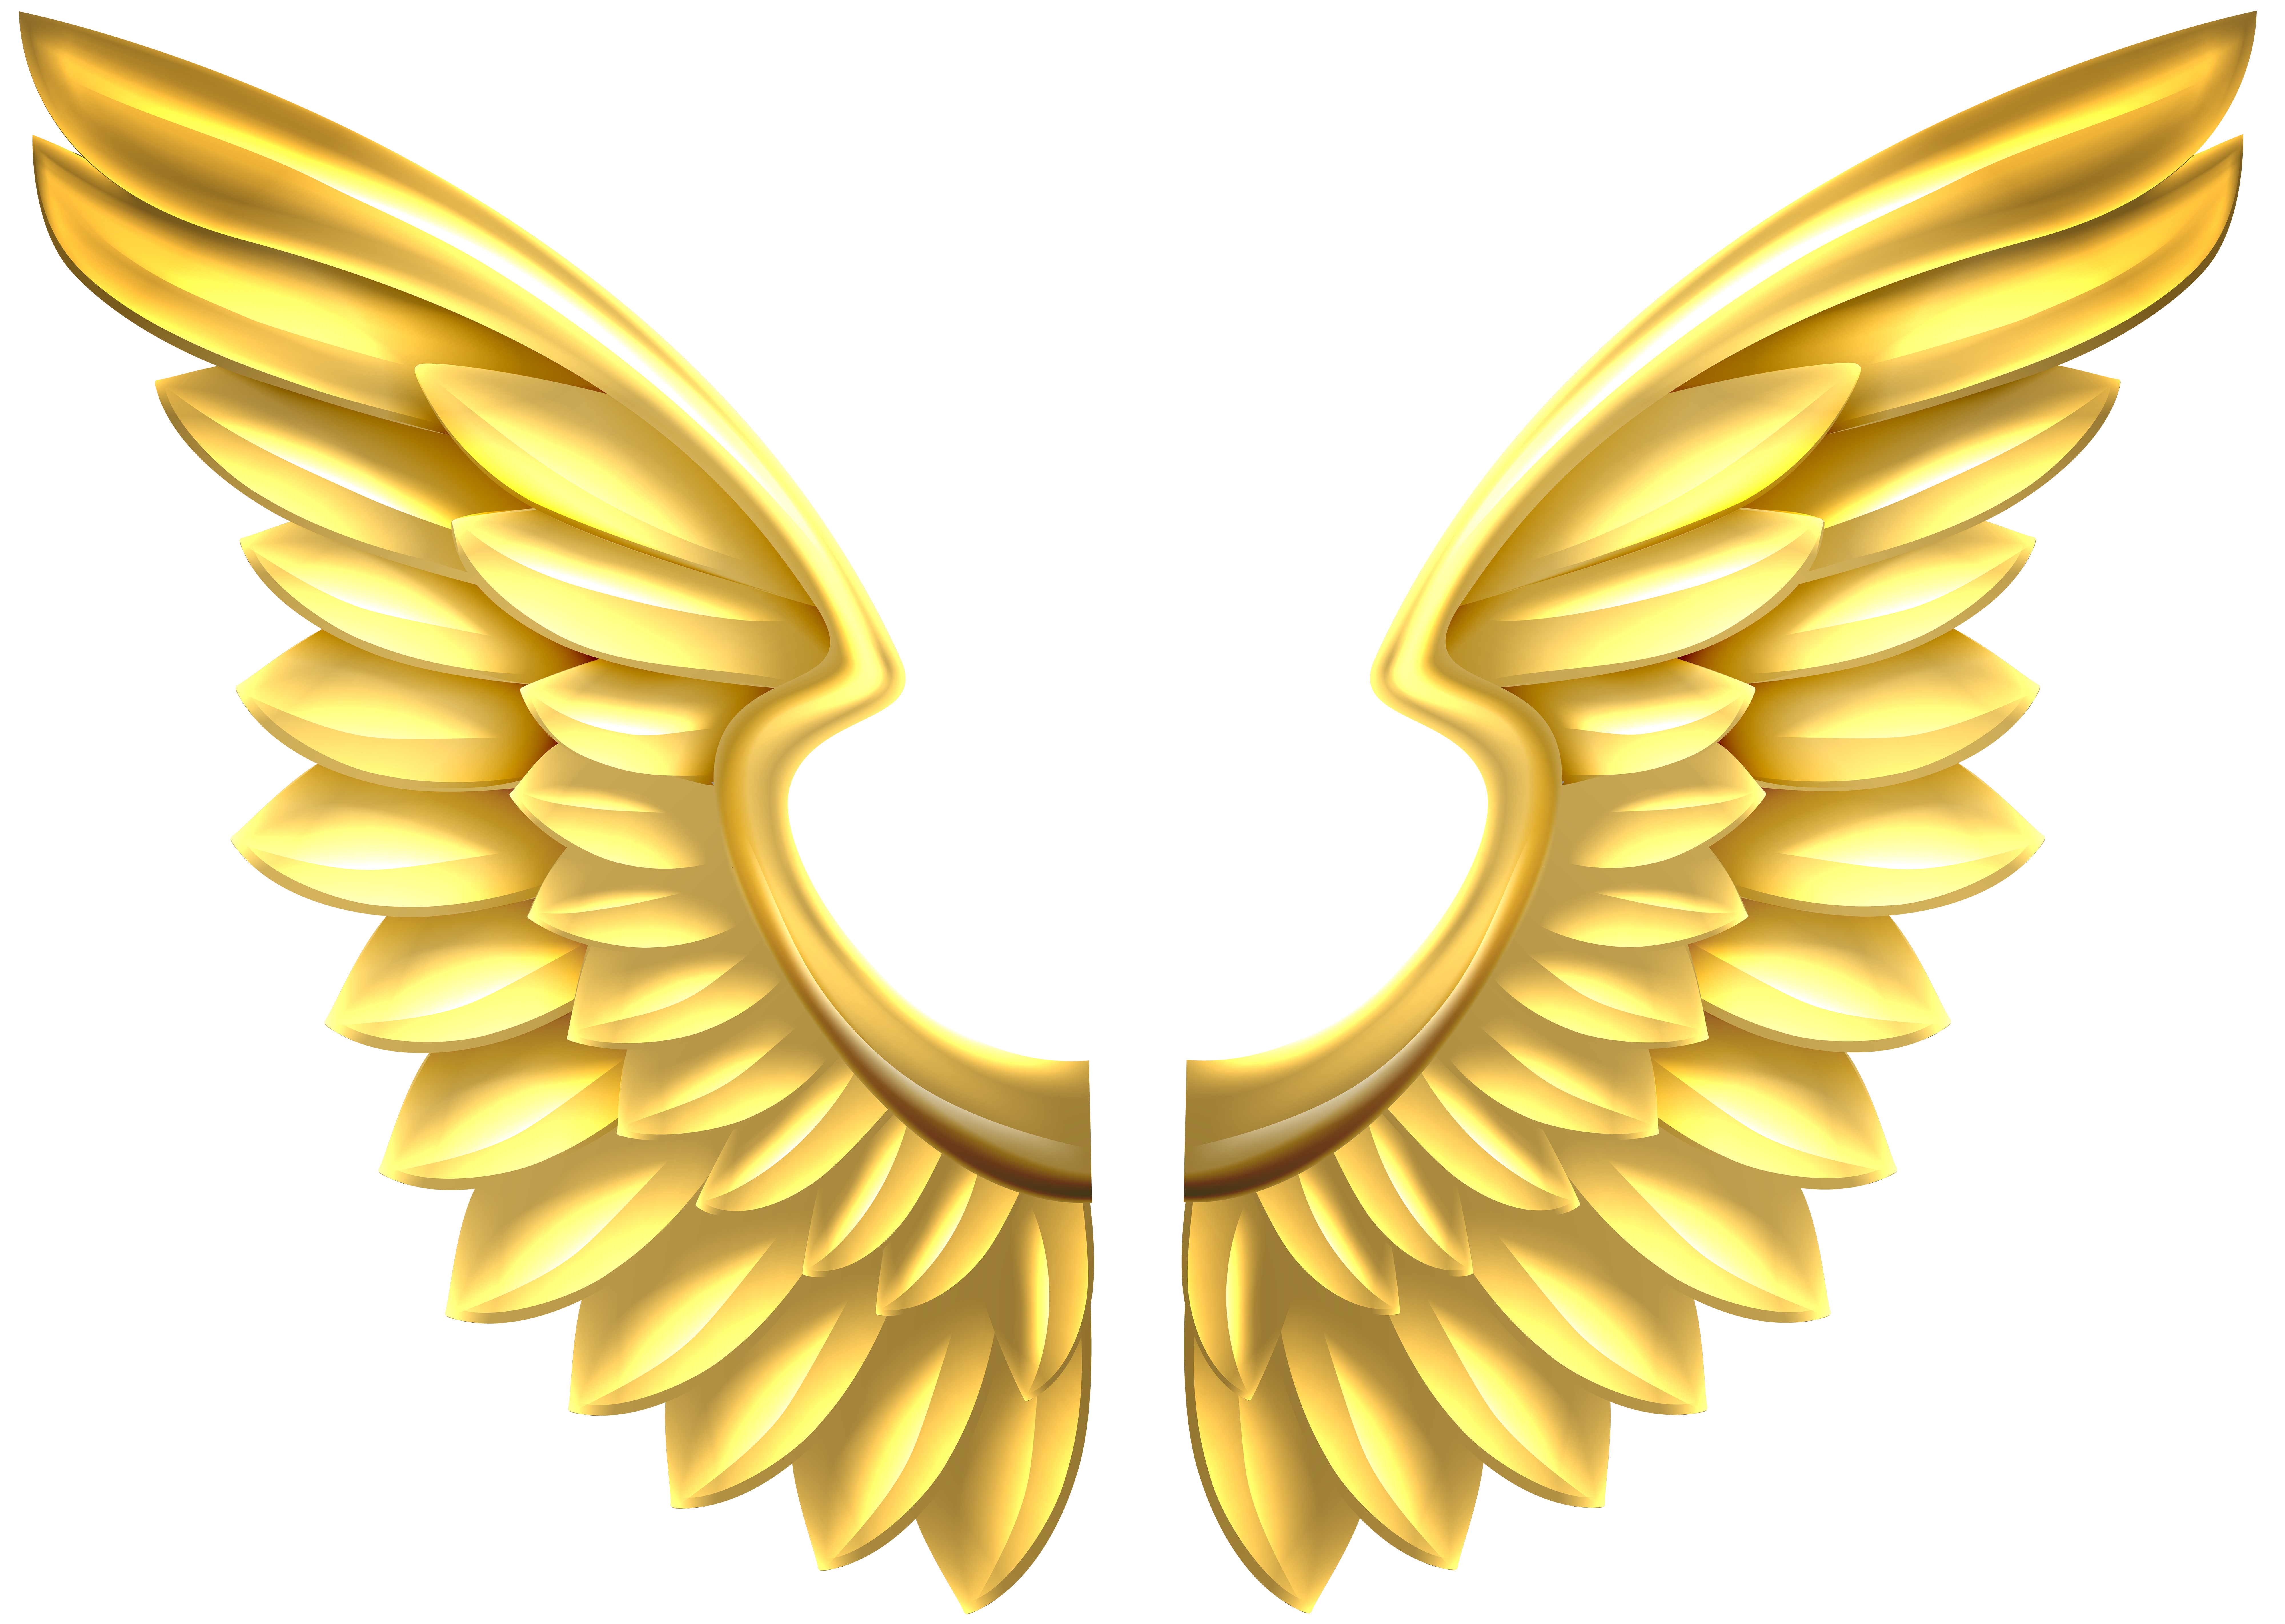 Wing clipart gold. Wings transparent png clip